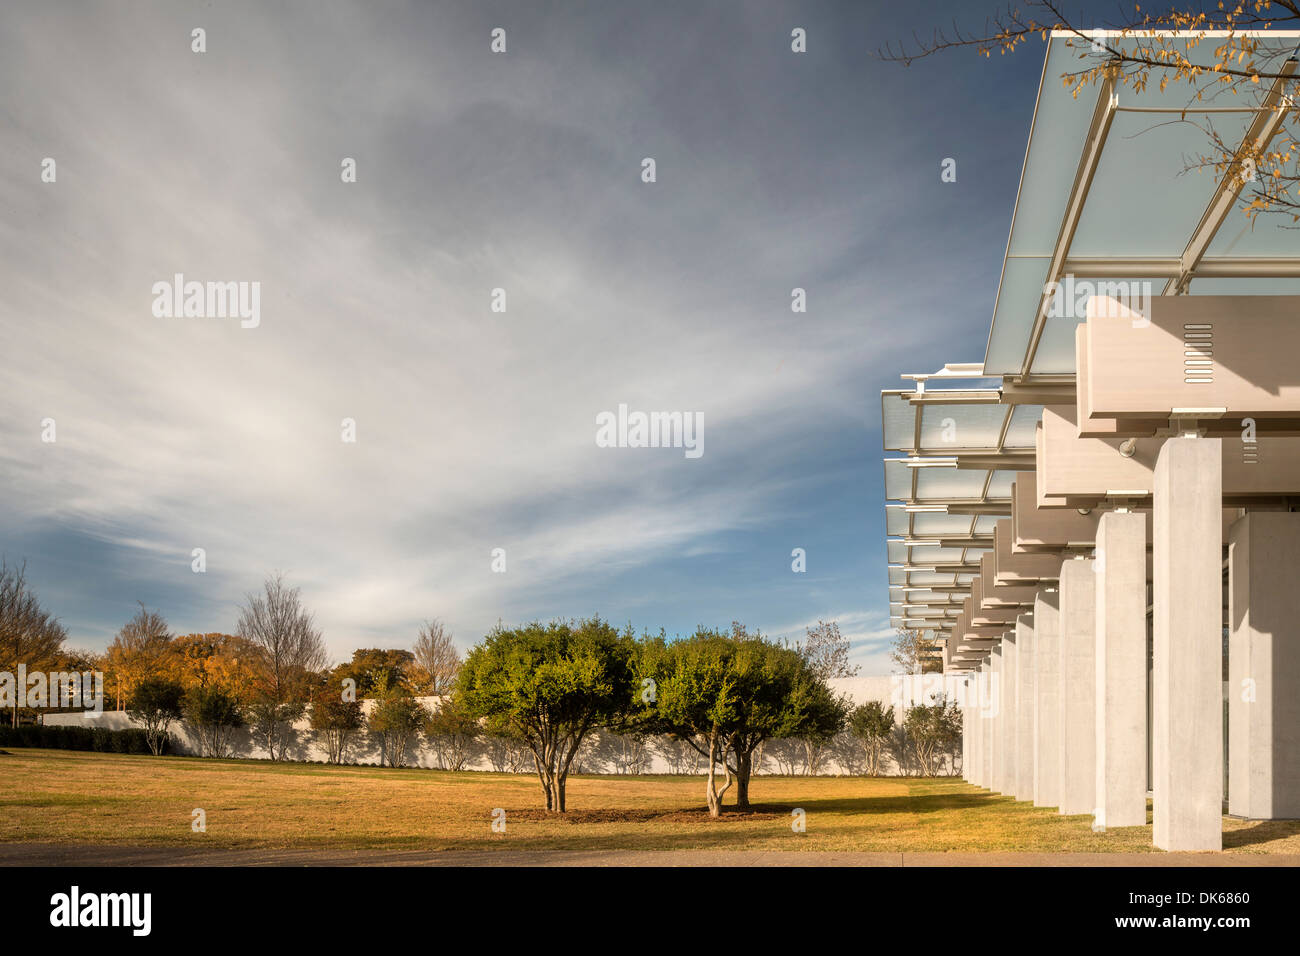 Kimbell Art Museum Renzo Piano Expansion, Fort Worth, United States. Architect: Renzo Piano Building Workshop, 2013. Stock Photo